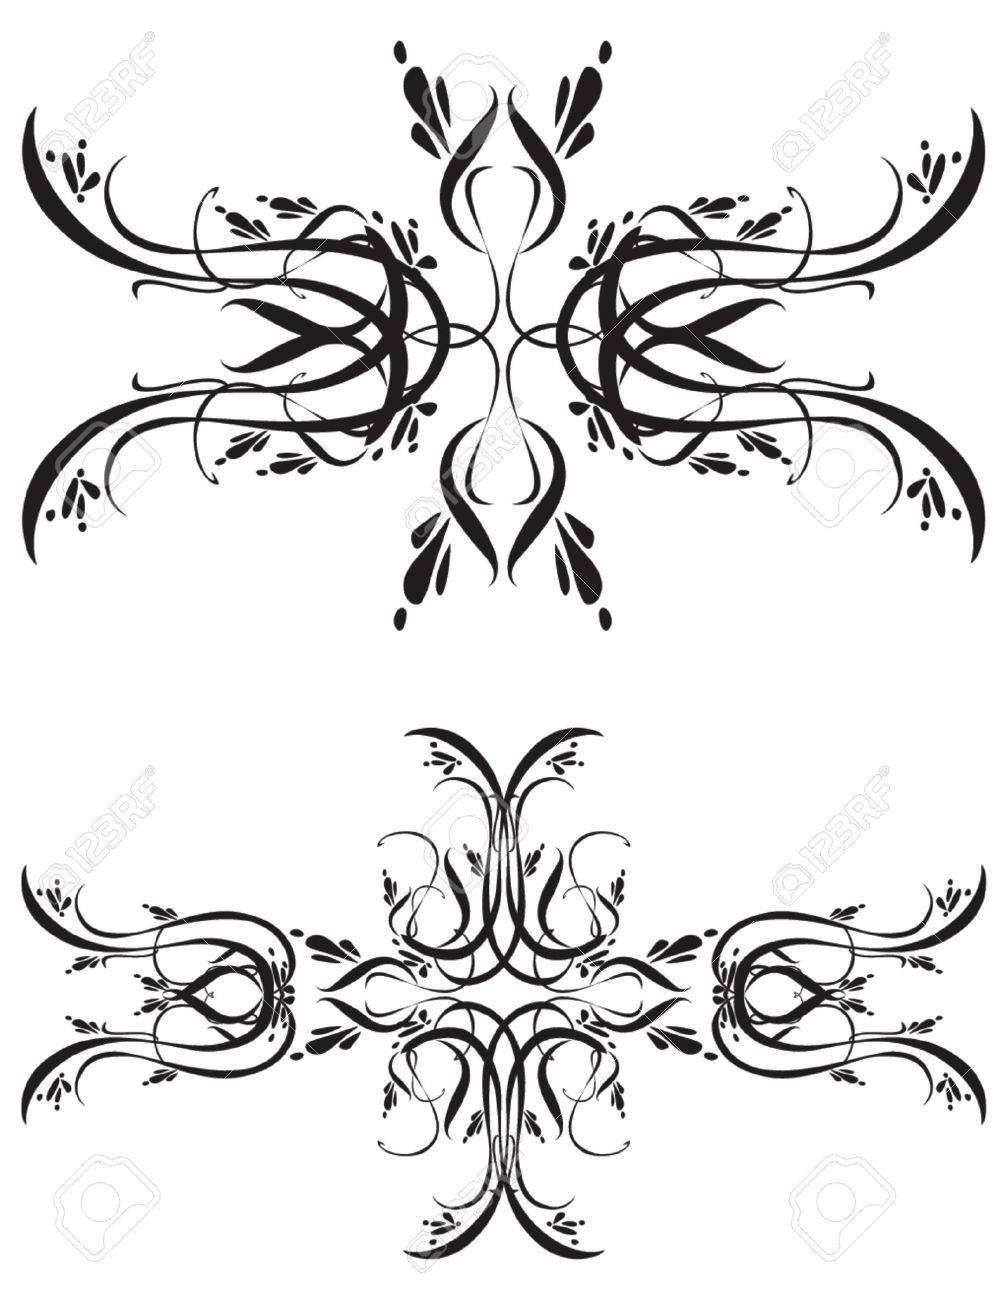 Black and white ornaments - Unique Graphics Useful As Decorations Ornaments And Separators Black Designs On A White Background